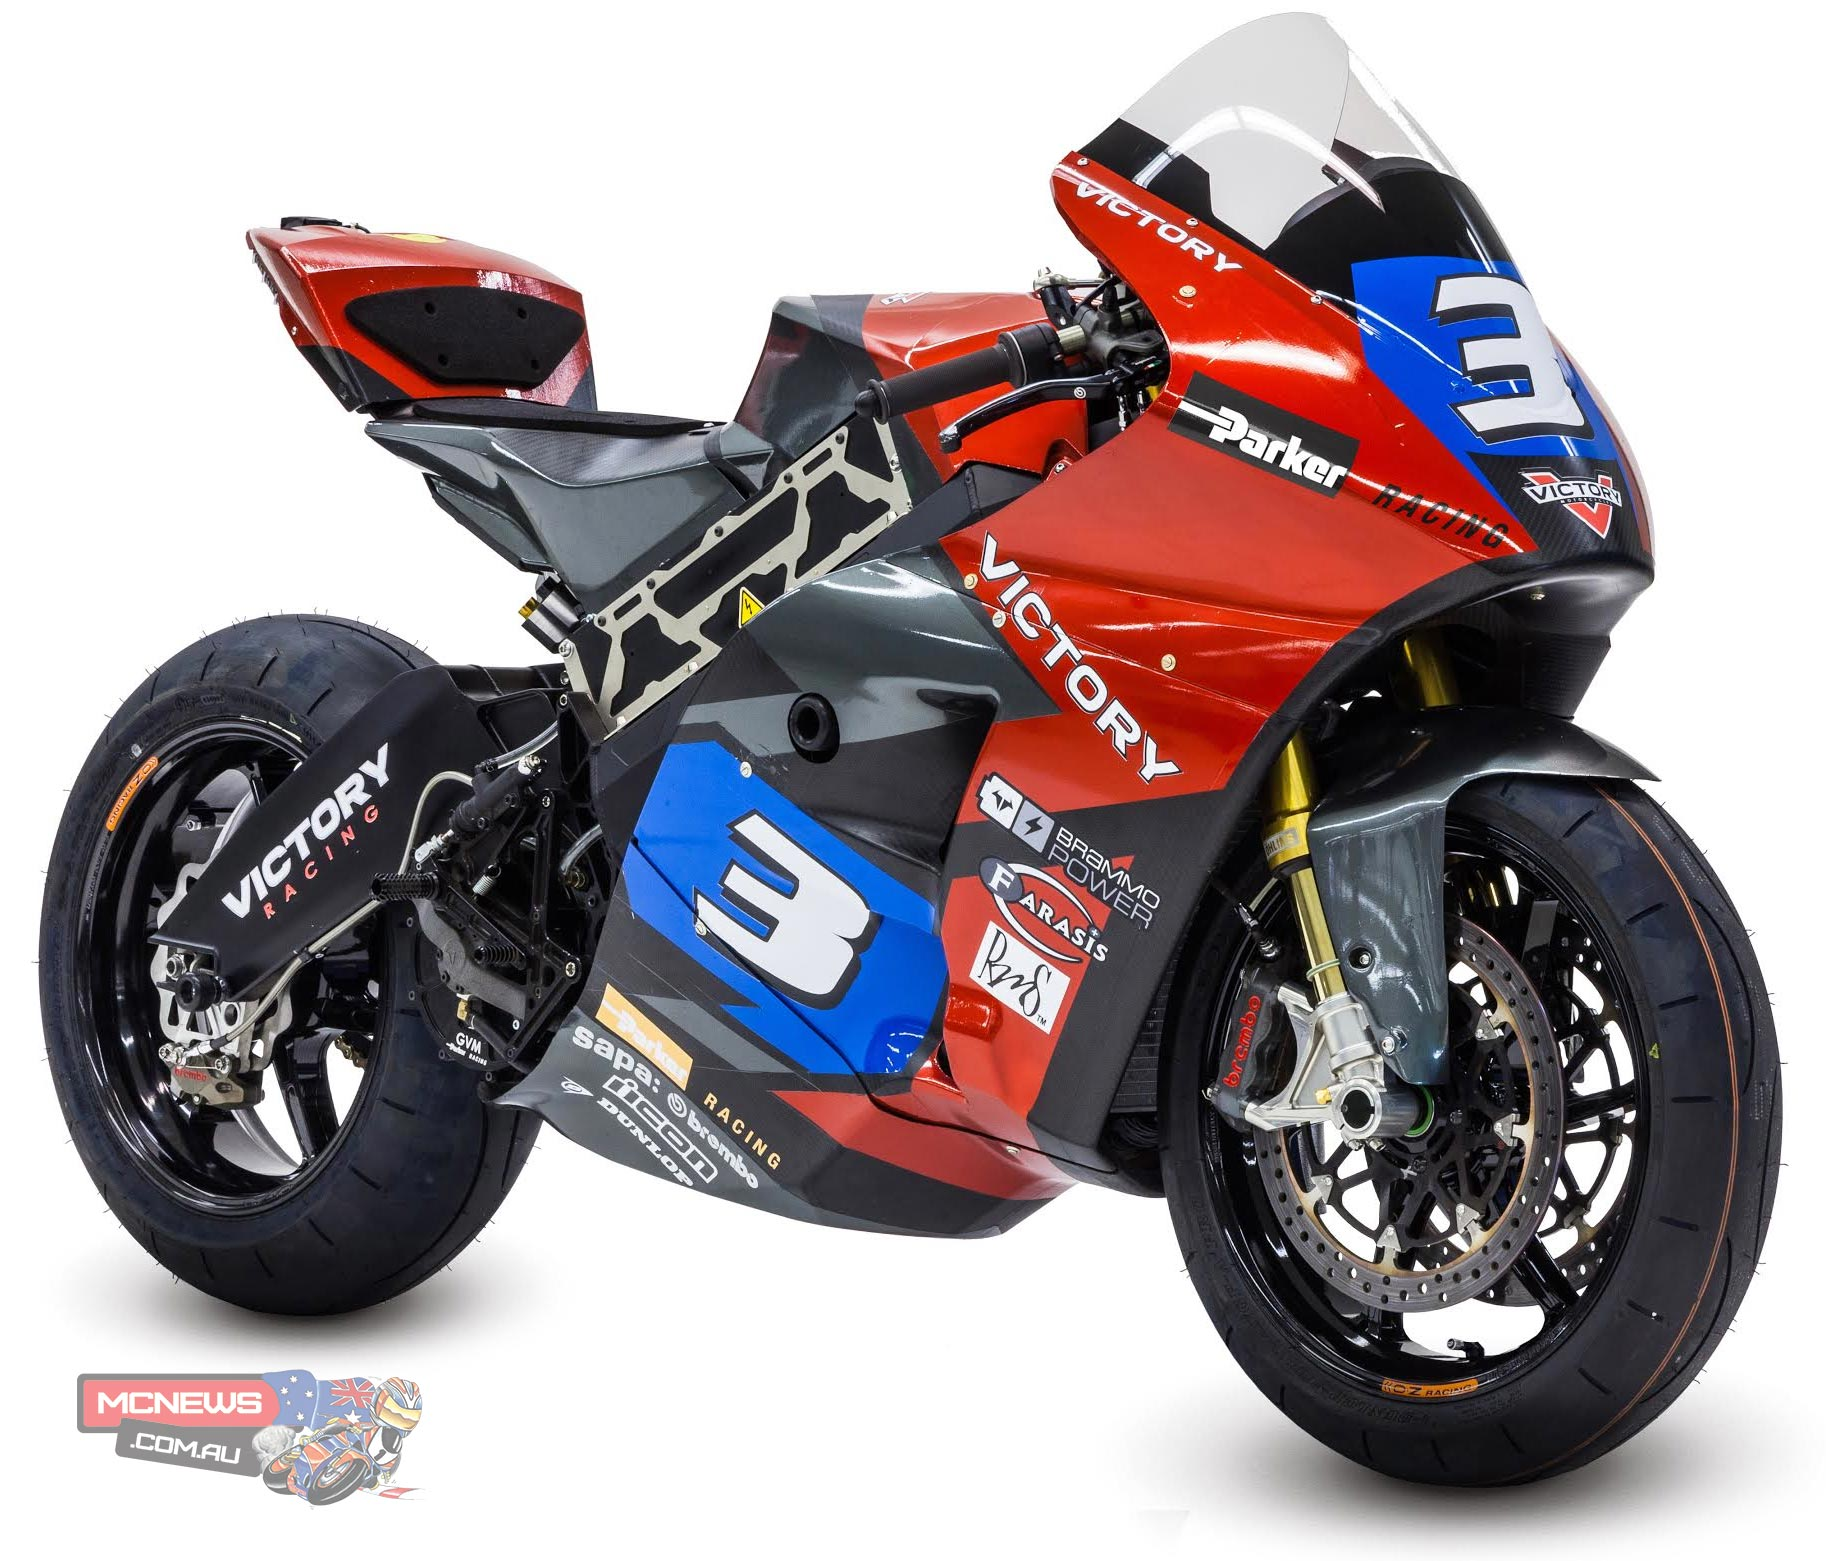 Victory Motorcycles to Race Prototype Electric Motorcycle at the Isle of Man TT Races